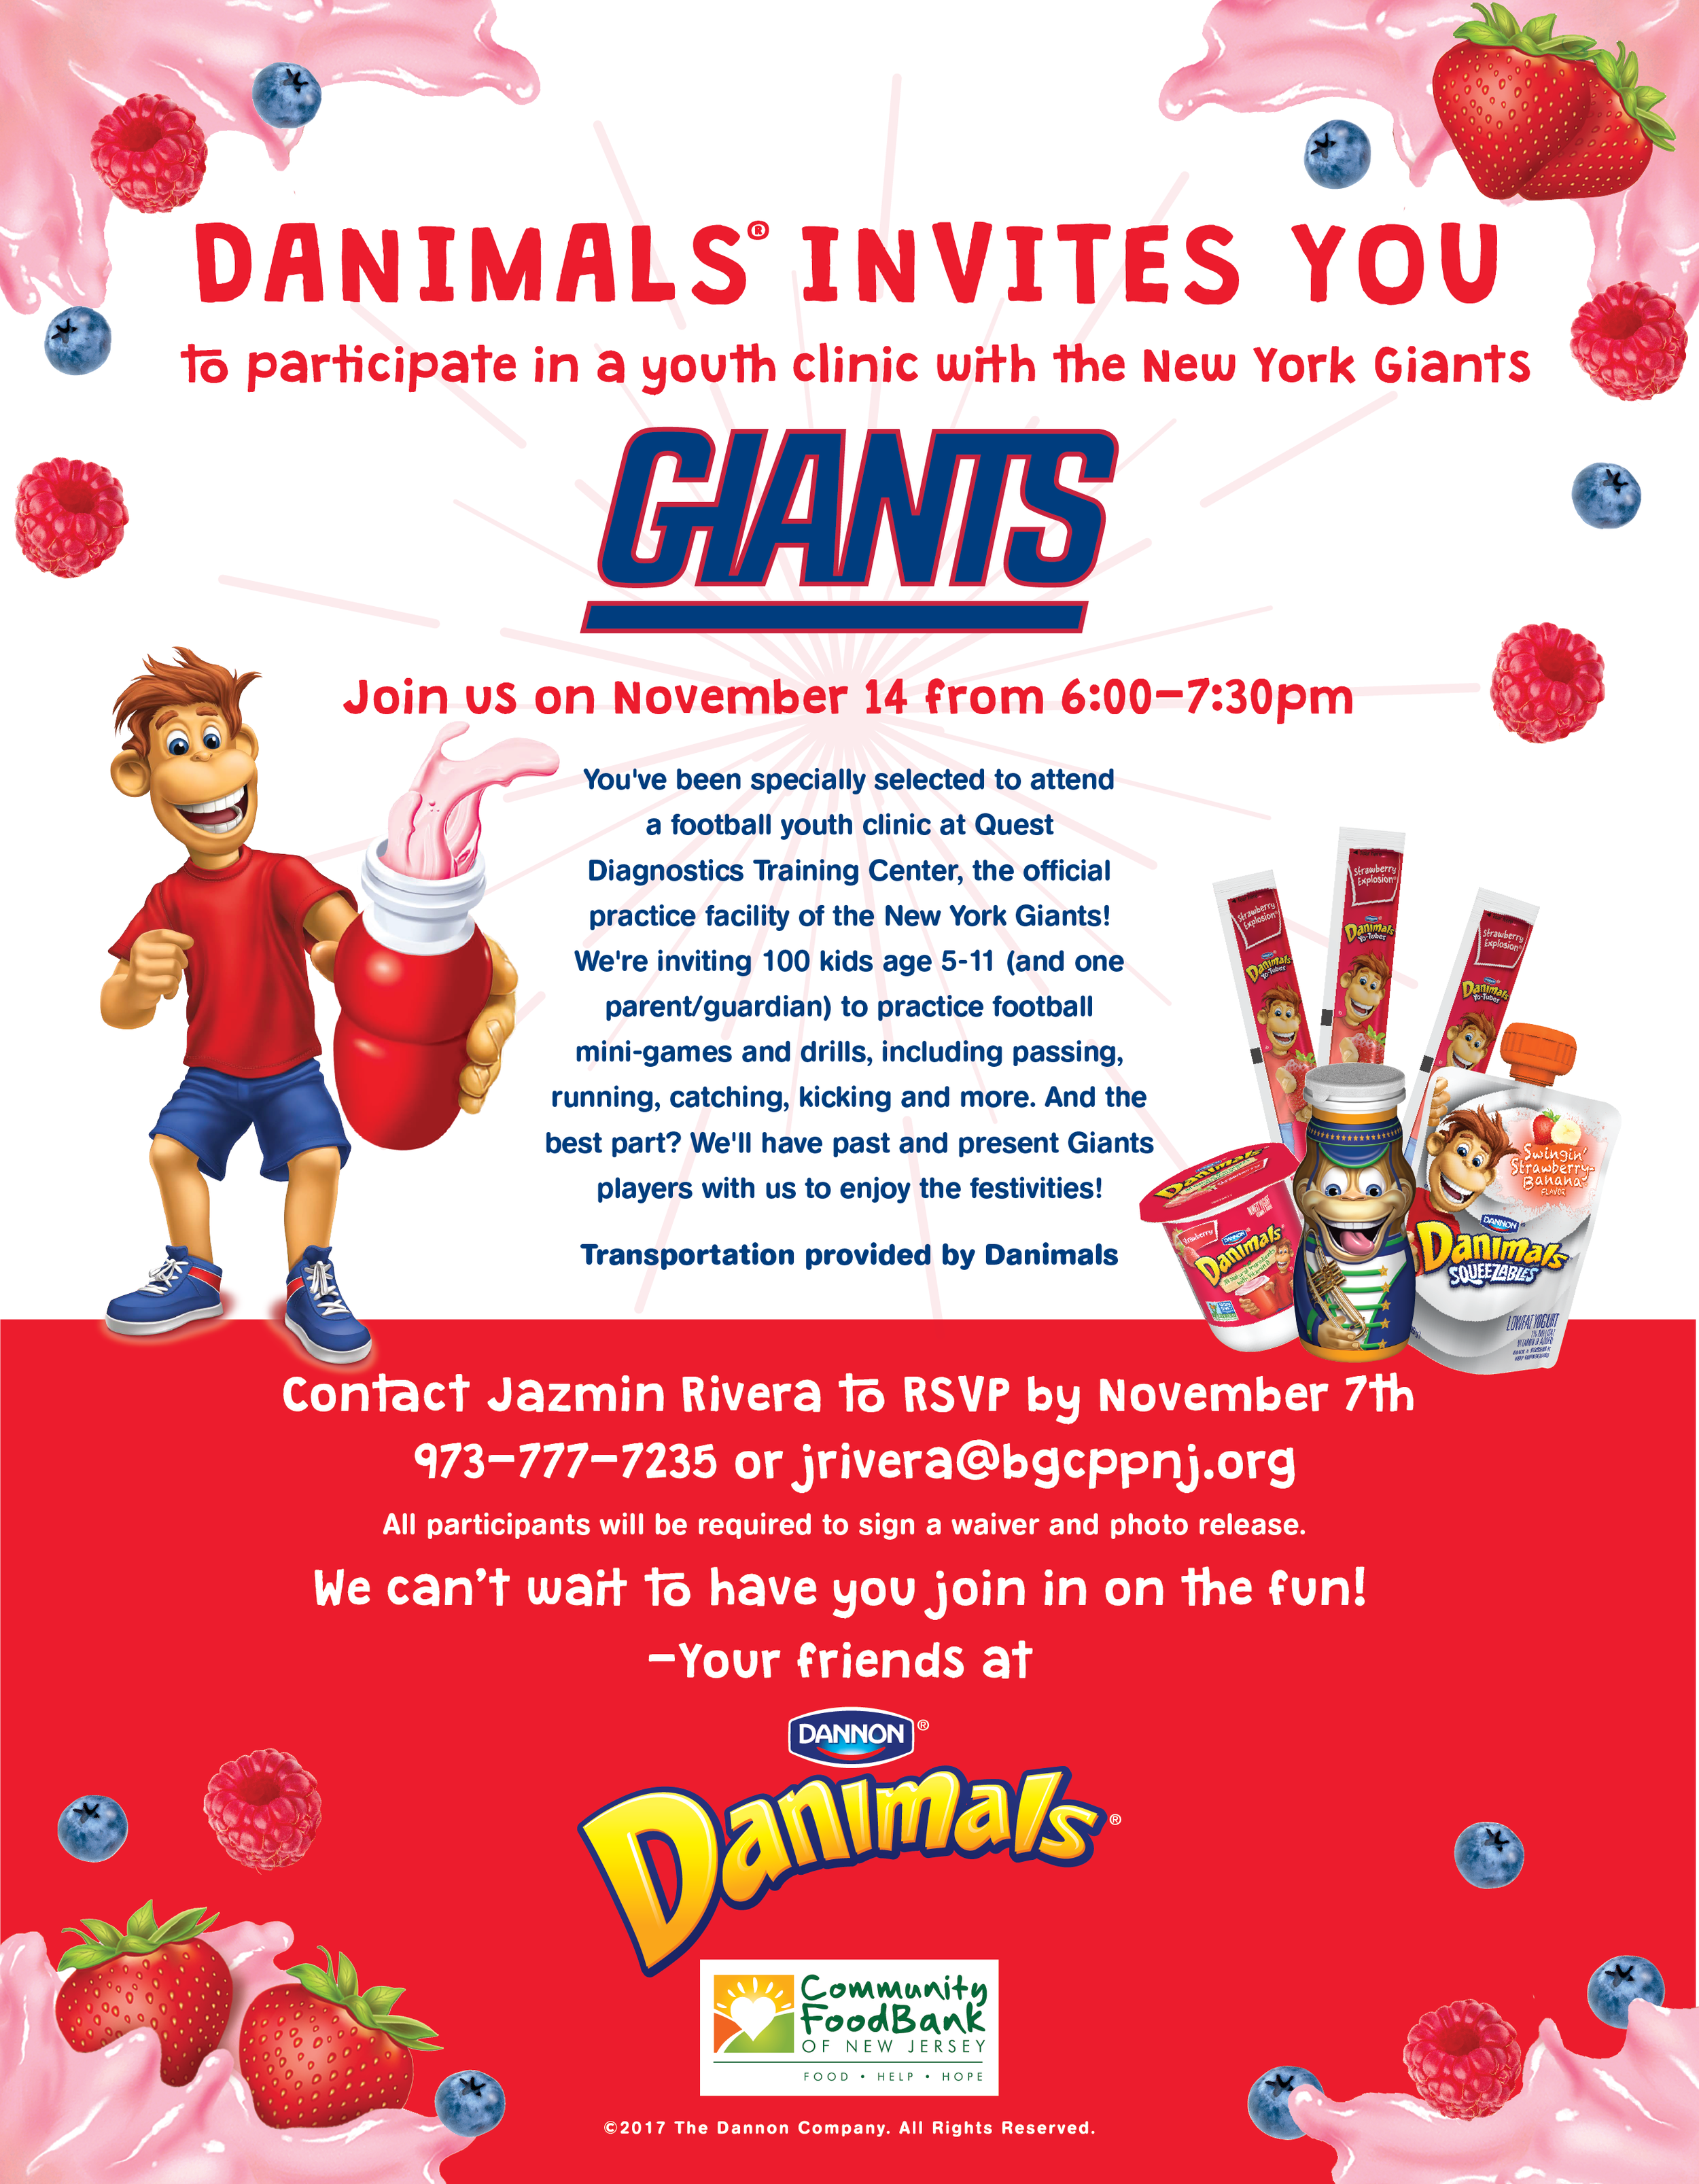 Danimals/New York Giants Event